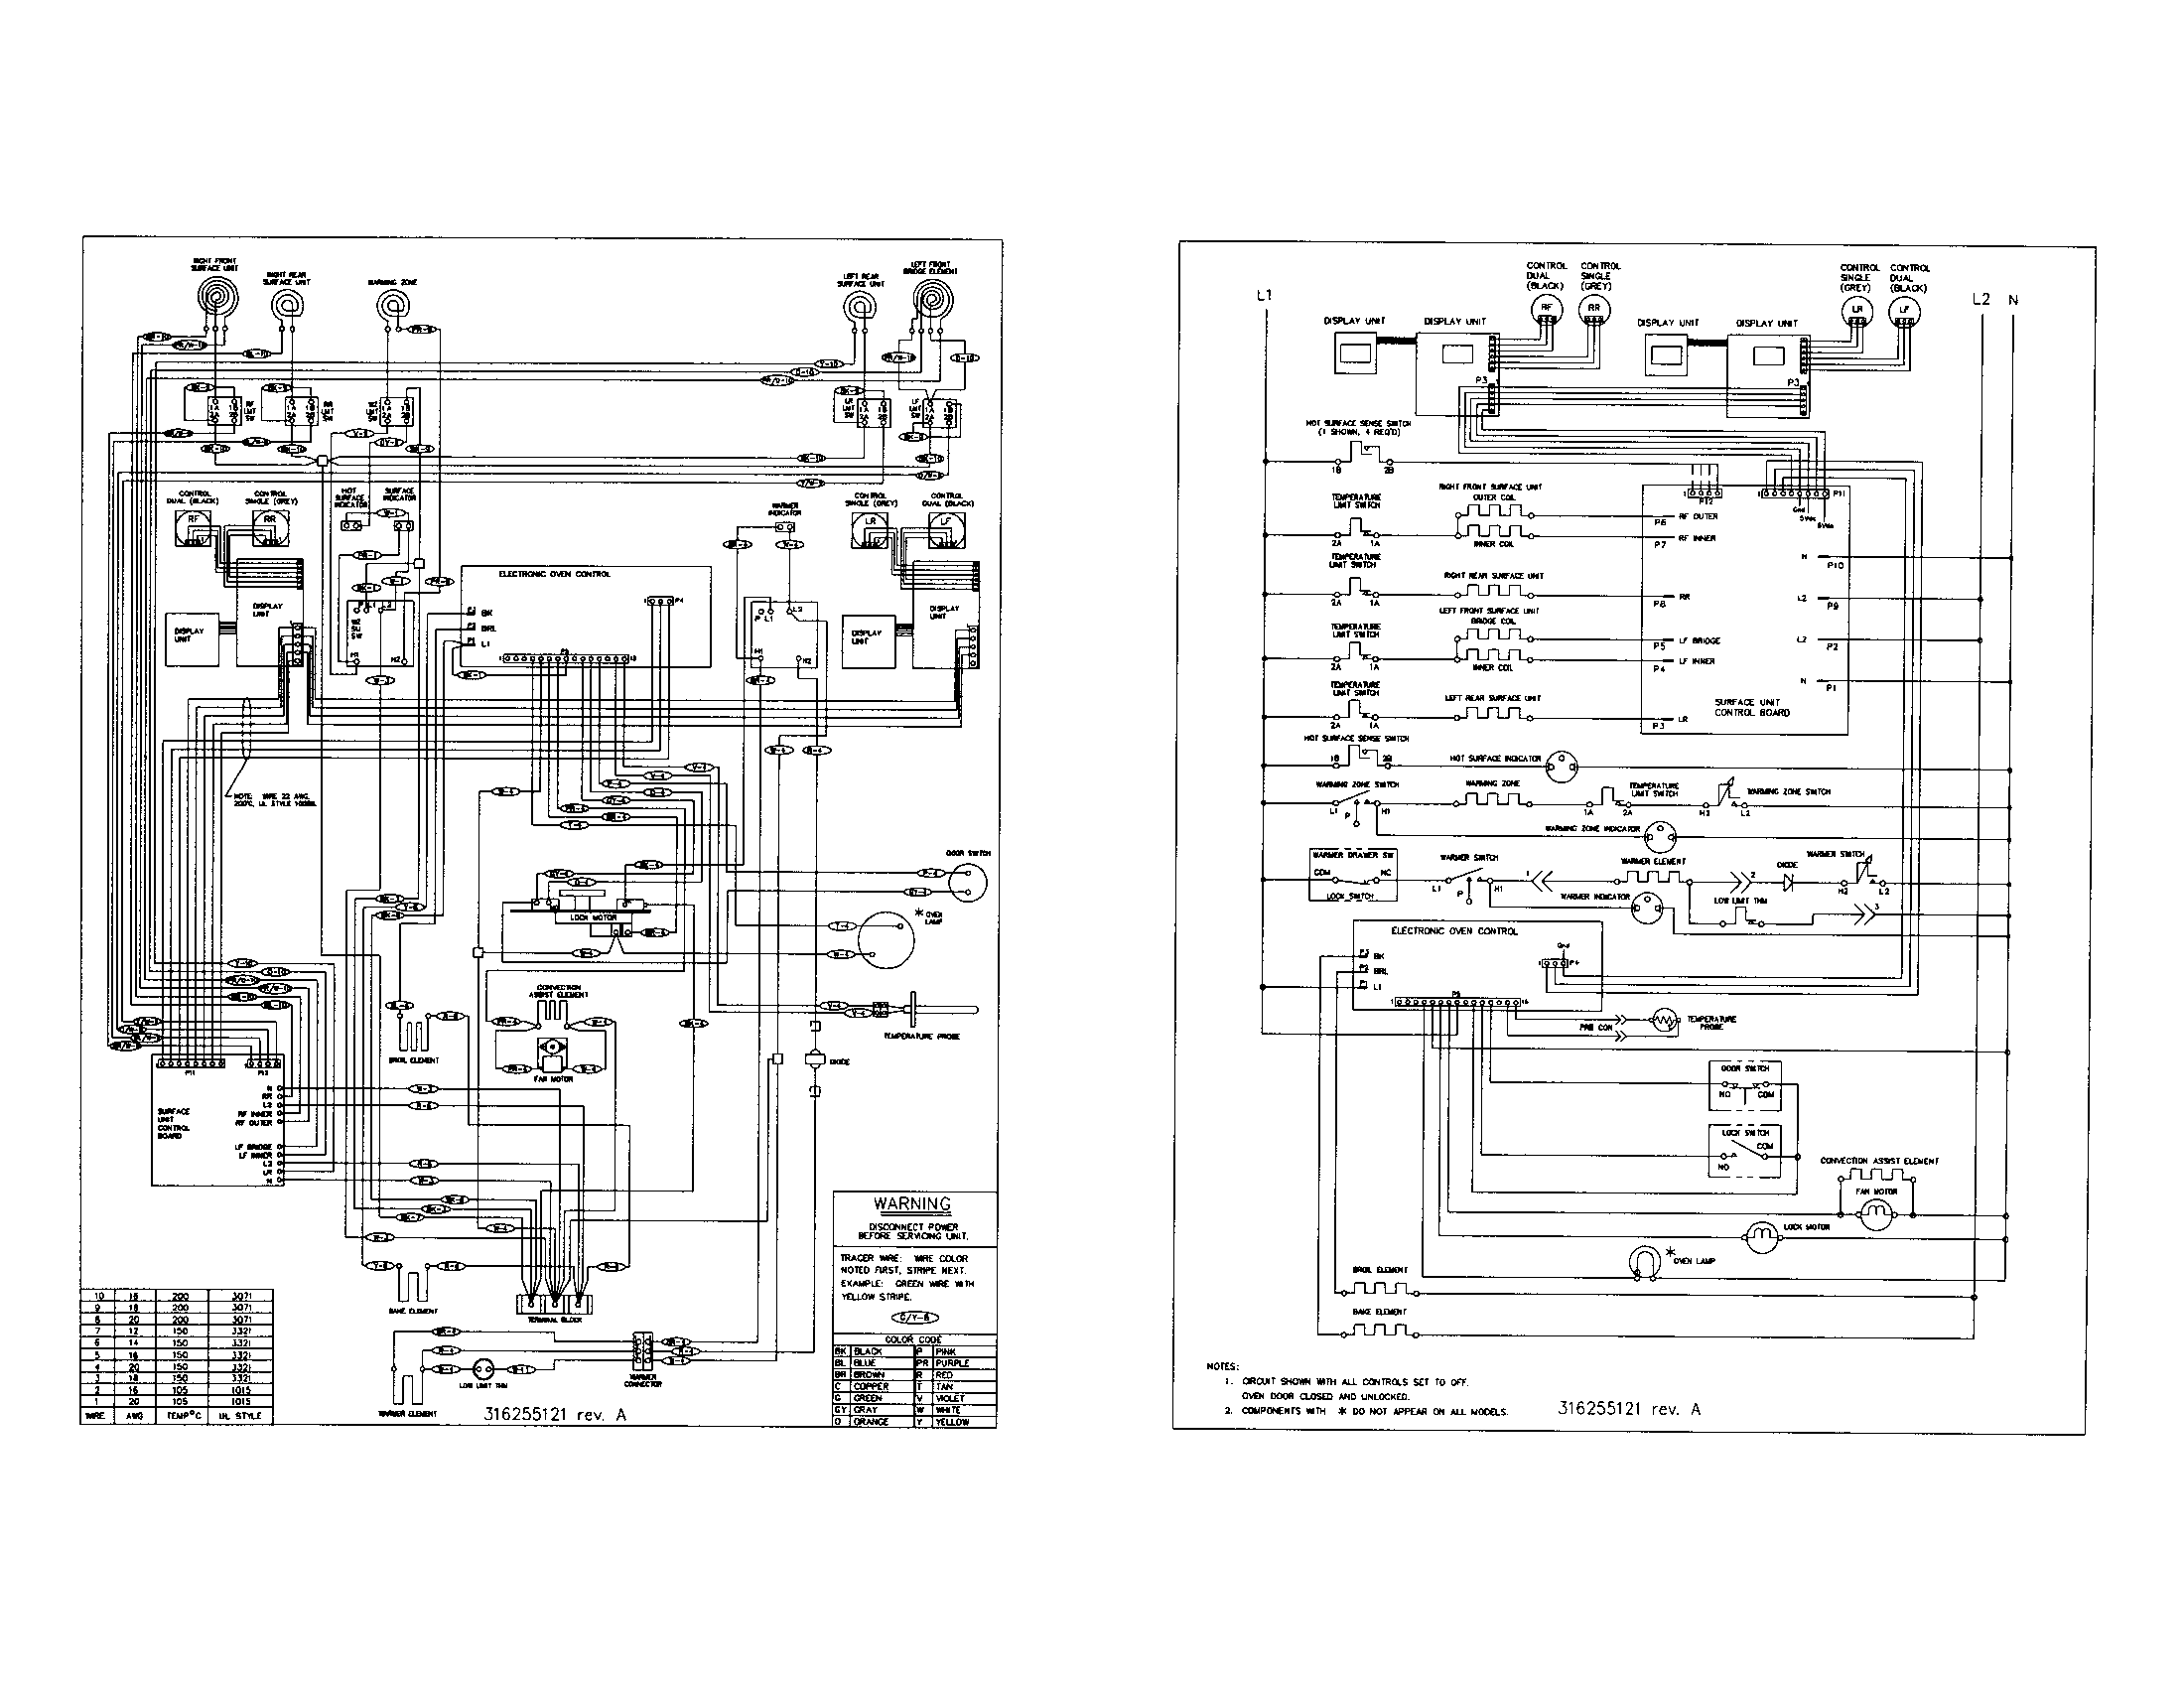 wiring diagram parts?resize\\\\\\\\\\\\\\\\\\\\\\\\\\\\\\\\\\\\\\\\\\\\\\\\\\\\\\\\\\\\\\\\\\\\\\\\\\\\\\\\\\\\\\\\\\\\\\\\\\\\\\\\\\\\\\\\\\\\\\\\\\\\\\\\\\\\\\\\\\\\\\\\\\\\\\\\\\\\\\\\\\\\\\\\\\\\\\\\\\\\\\\\\\\\\\\\\\\\\\\\\\\\\\\=840%2C648 wiring diagram head unit ertiga gandul 45 77 79 119 on car wiring  at alyssarenee.co